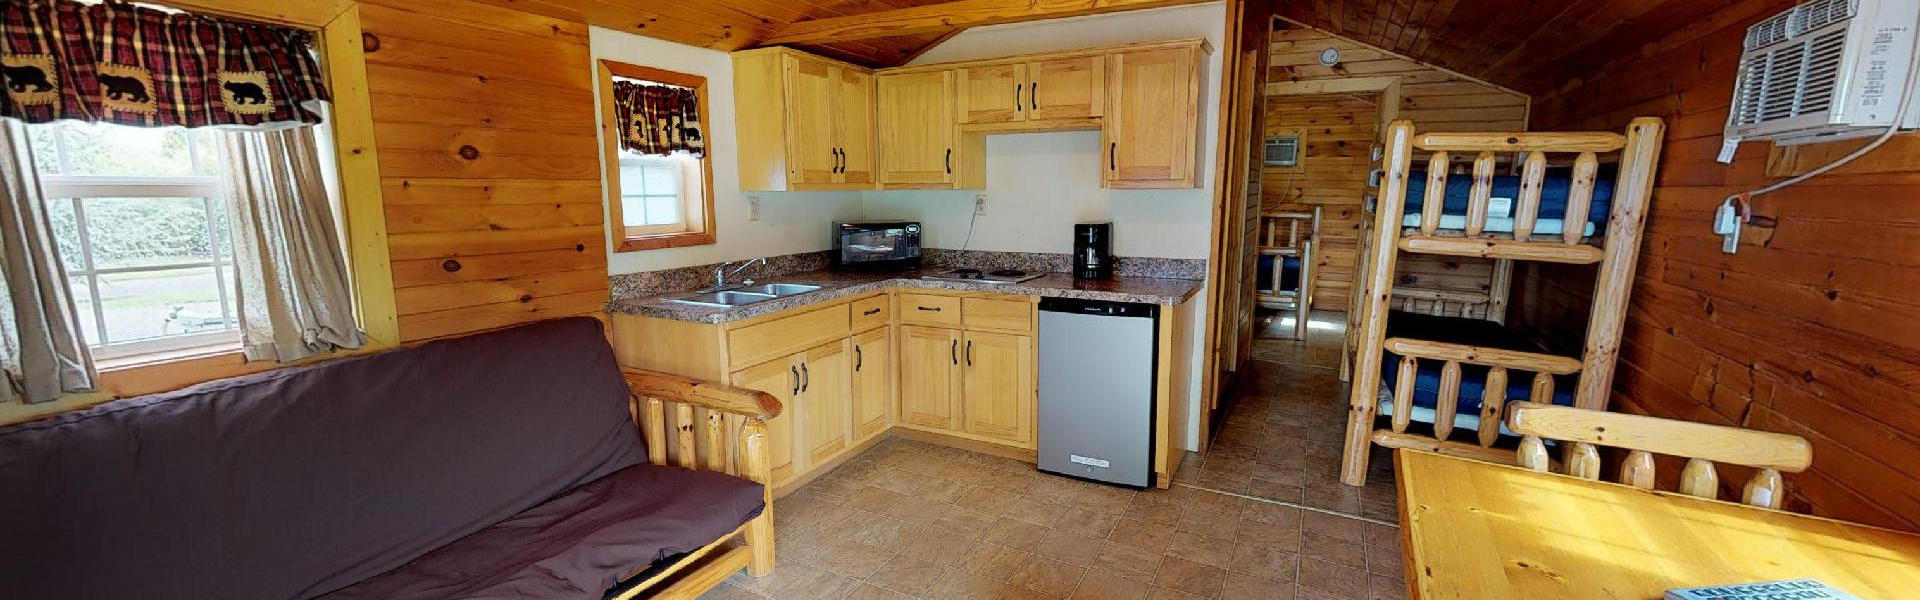 Buttonwood Campground Virtual Tour Image